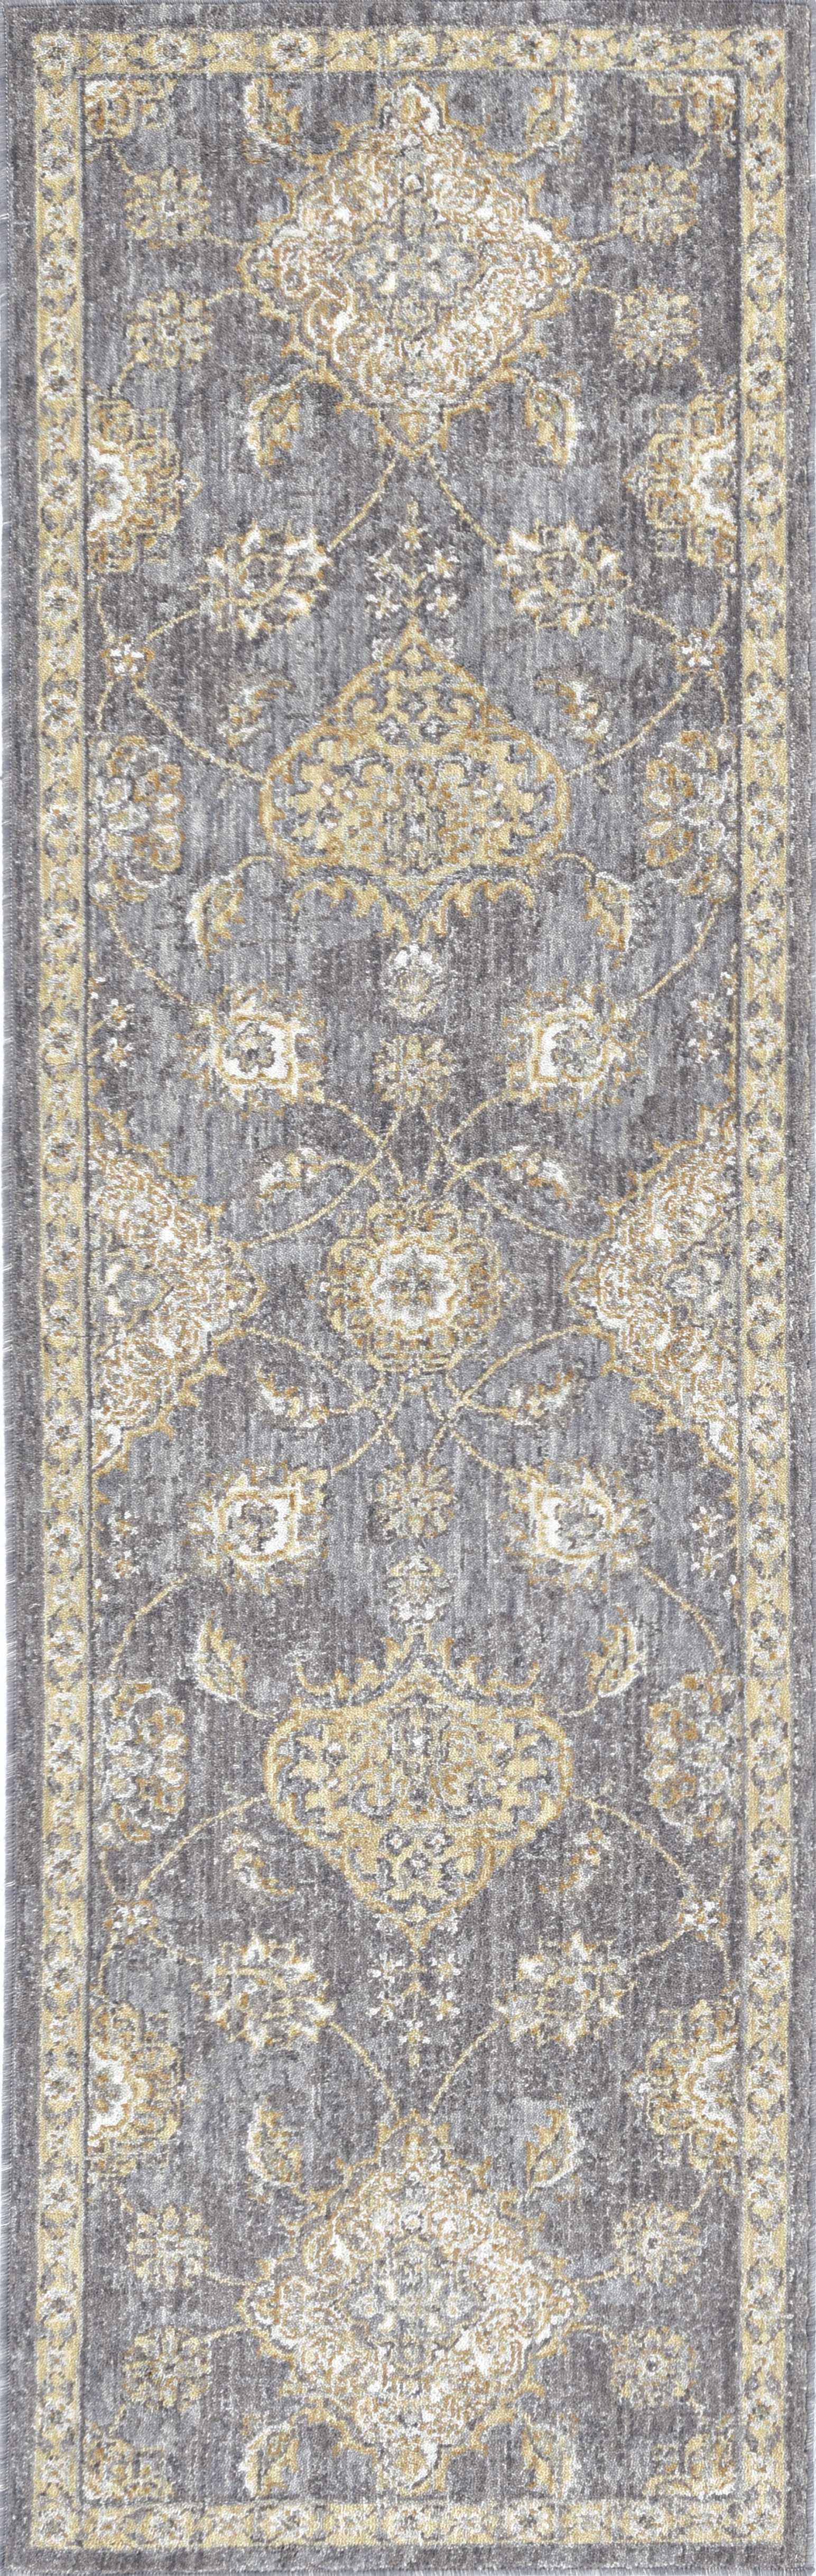 5'x8' Sage Green Machine Woven Traditional Indoor Area Rug